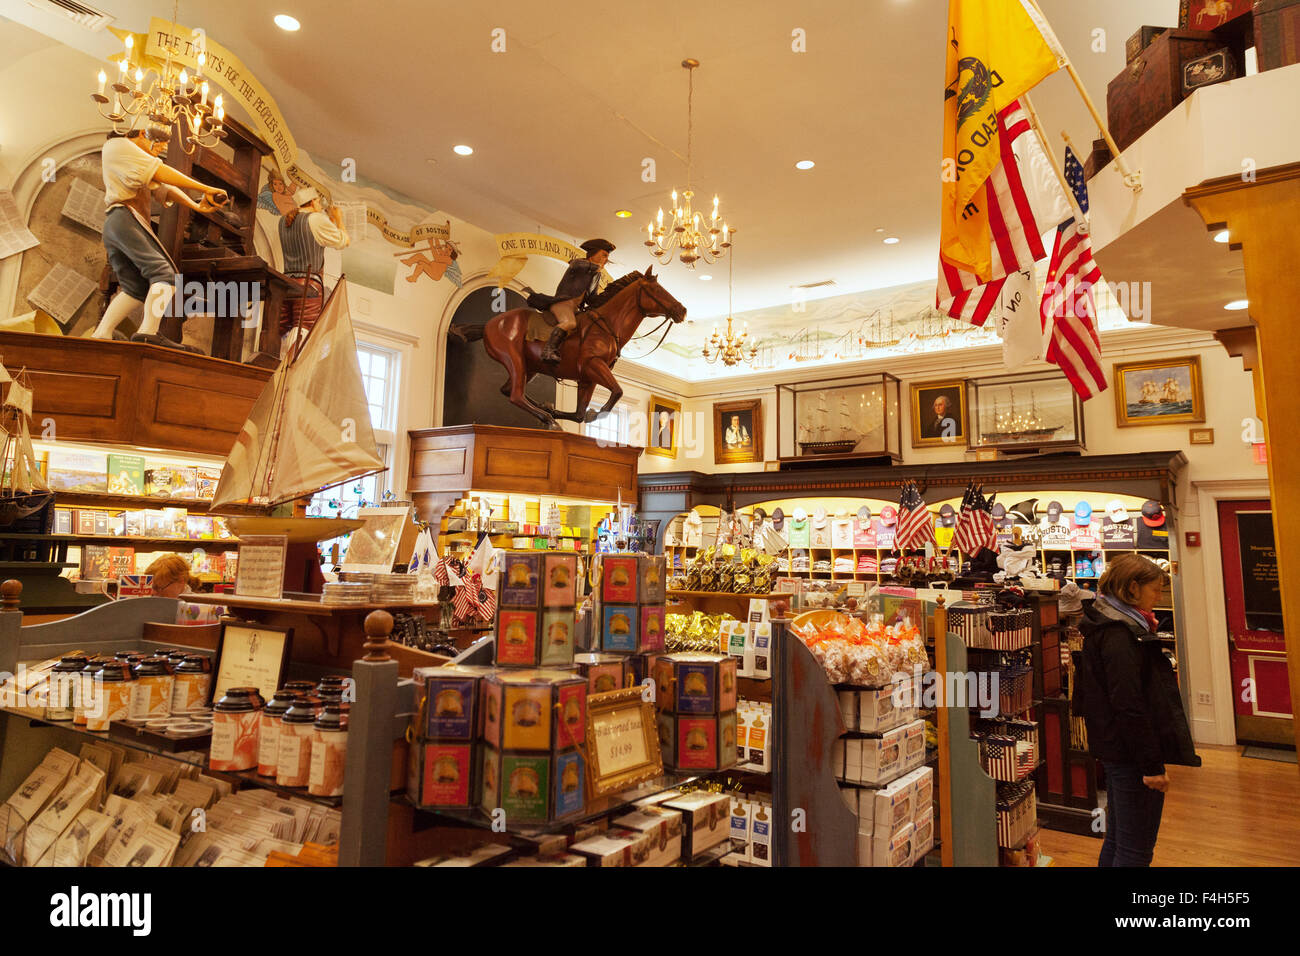 The Gift Shop Interior Boston Tea Party Ships Museum Boston Stock Photo 88887993 Alamy